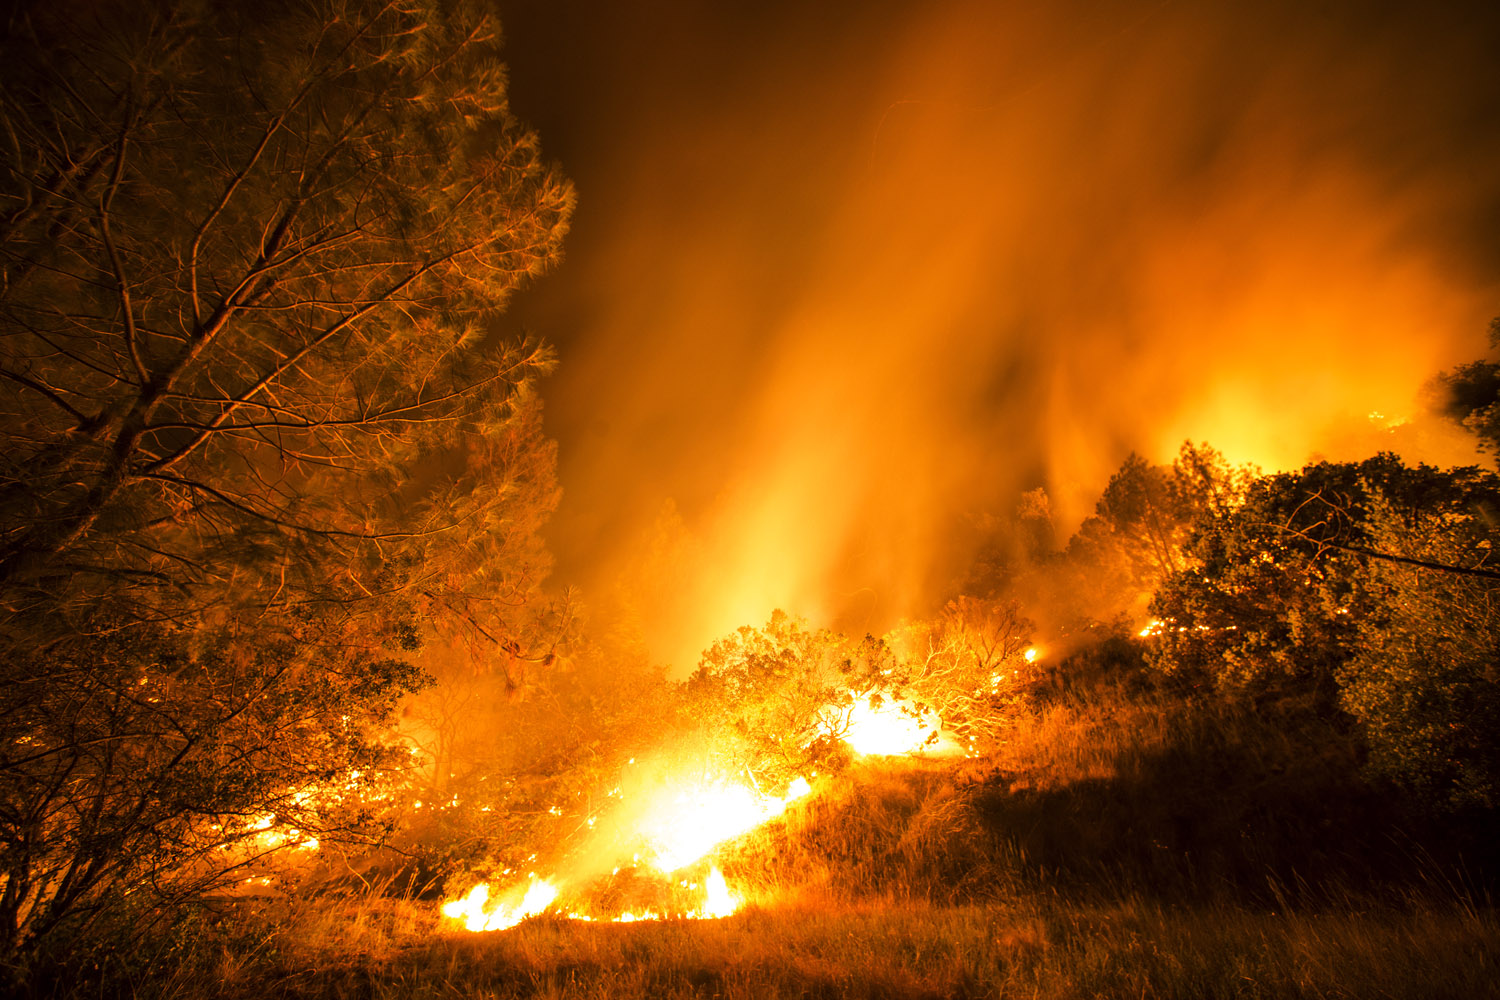 The Butts Fire burns near the town of Angwin in Napa County, Calif., July 1, 2014.